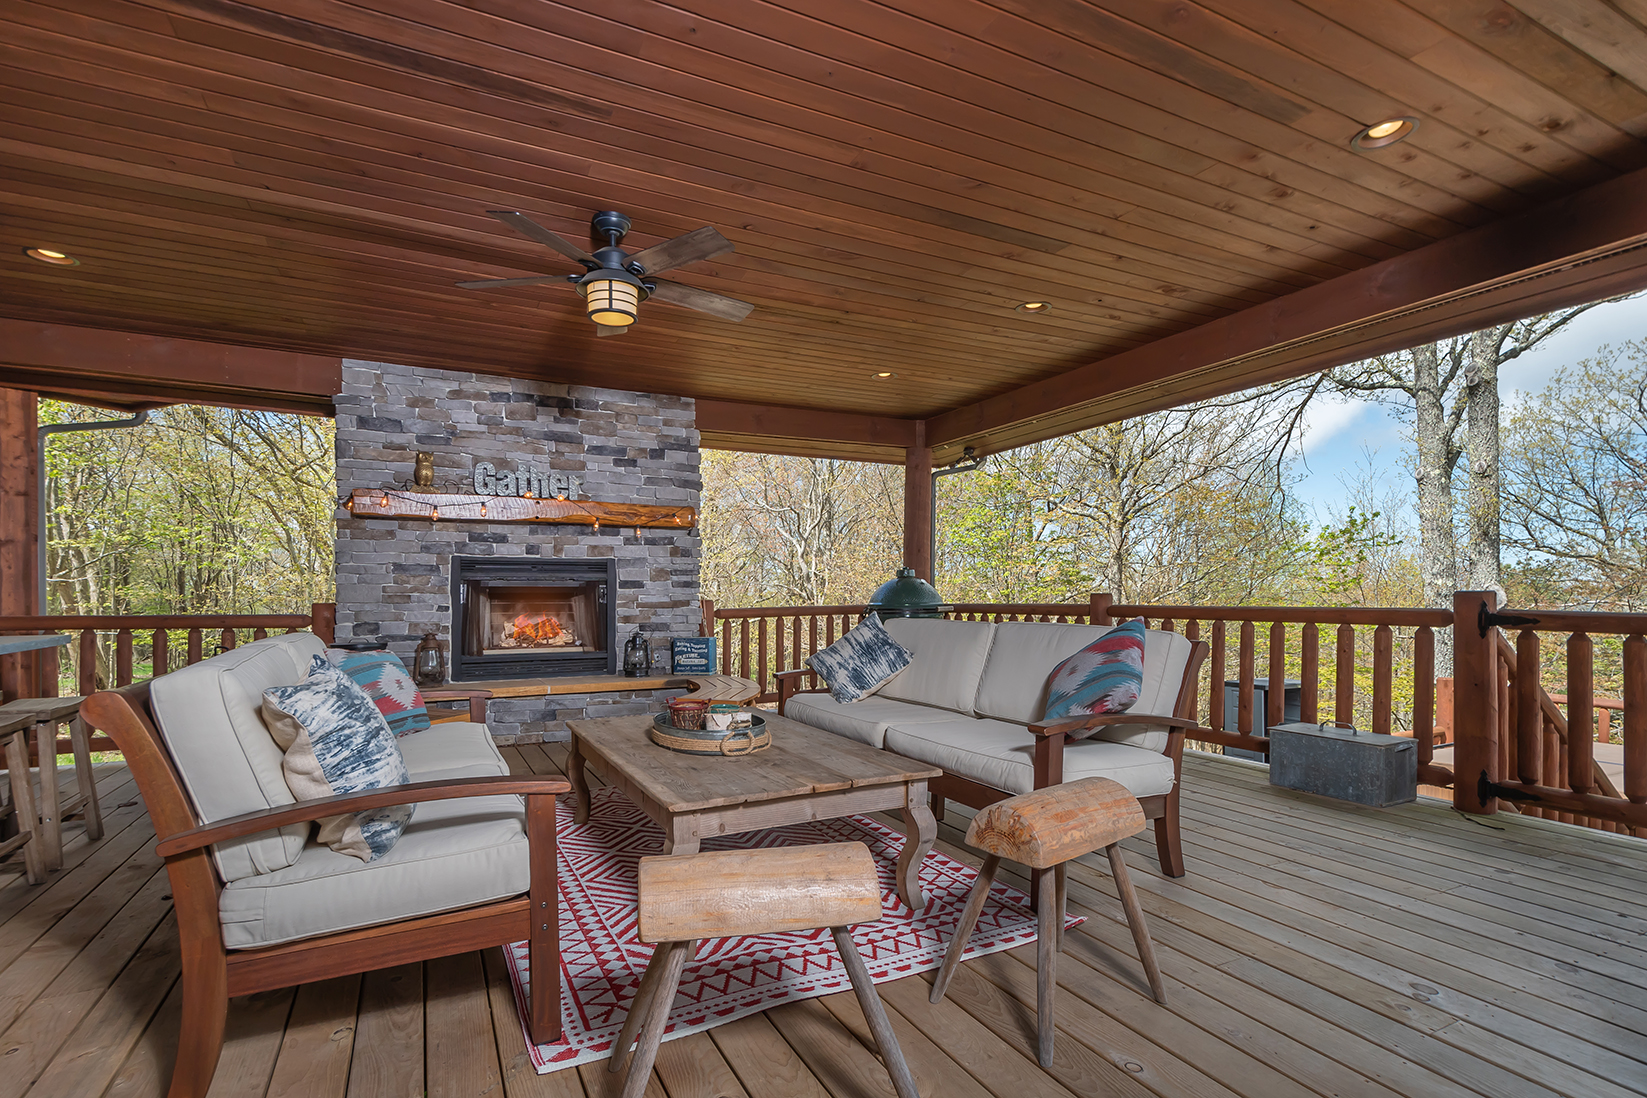 585SUMMITDRIVE_OutdoorLivingArea_1